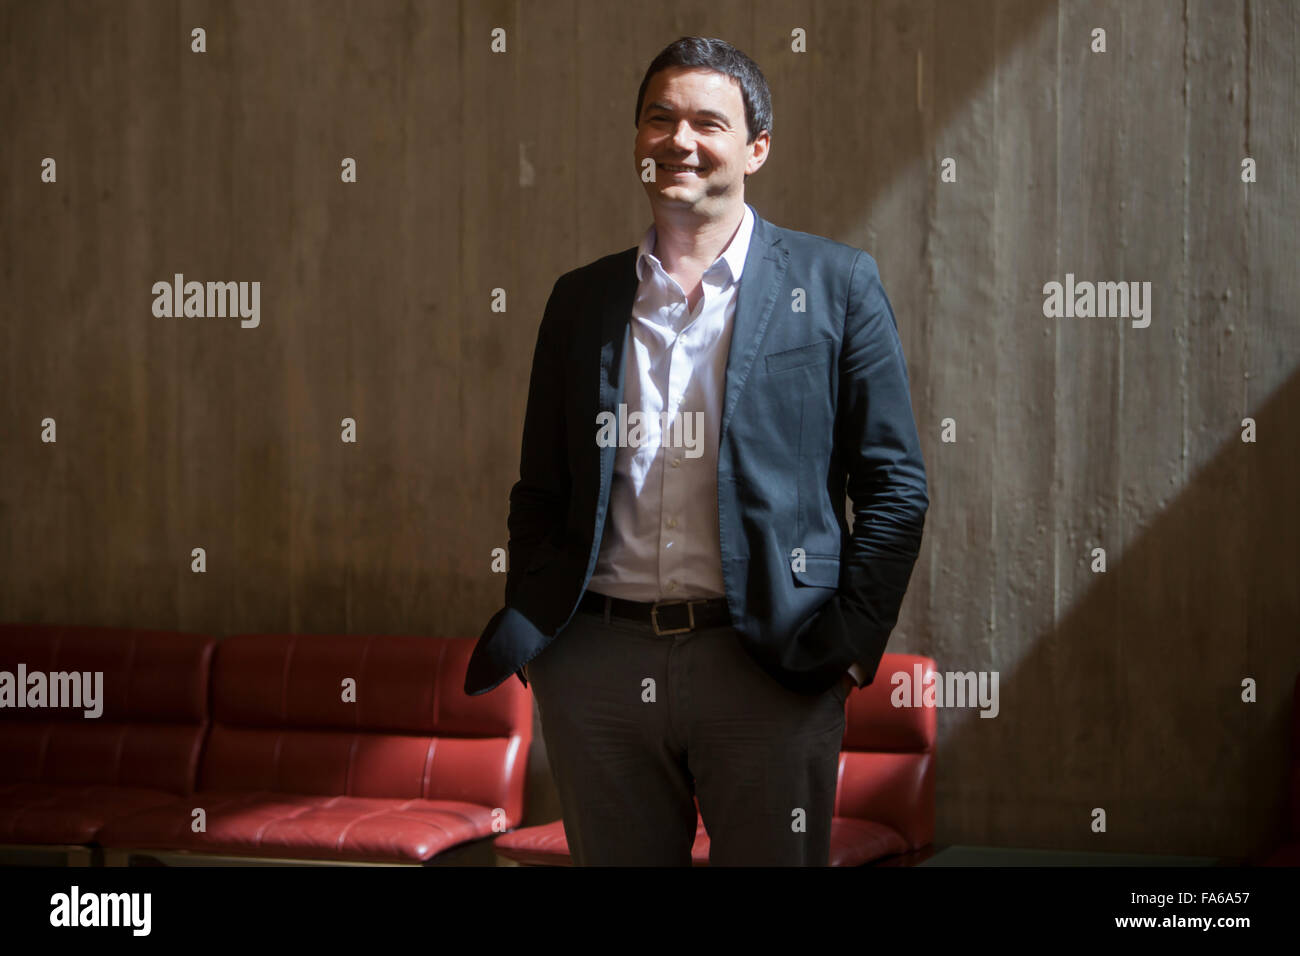 Thomas Piketty, French economist who works on wealth and income inequality, on a visit to Portugal. - Stock Image